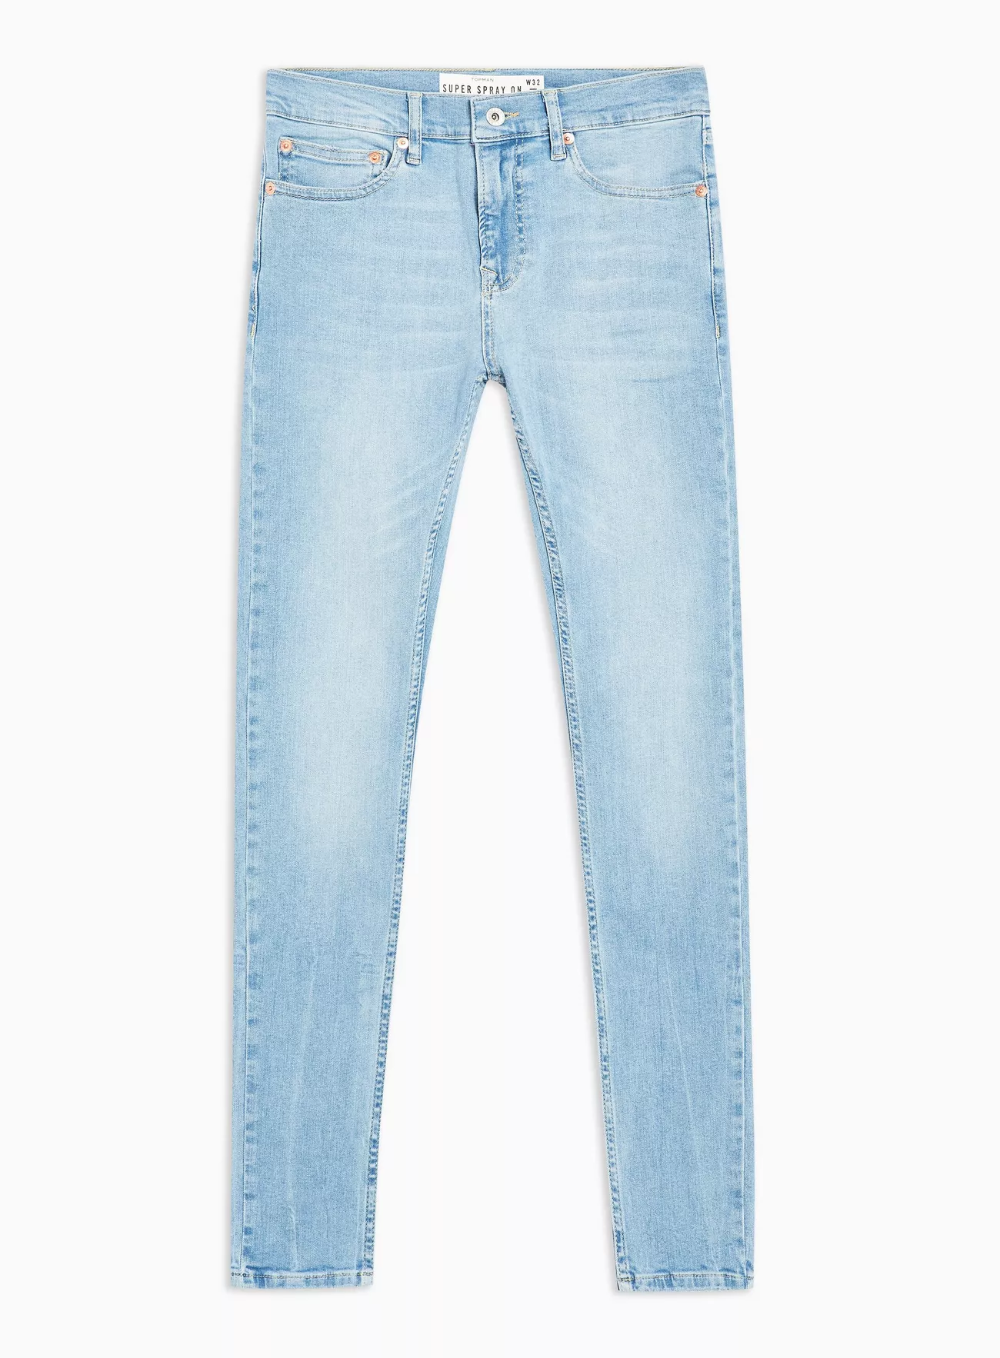 Carousel Image 0 Light Wash Jeans Outfit Spray On Jeans Denim Jeans Ripped